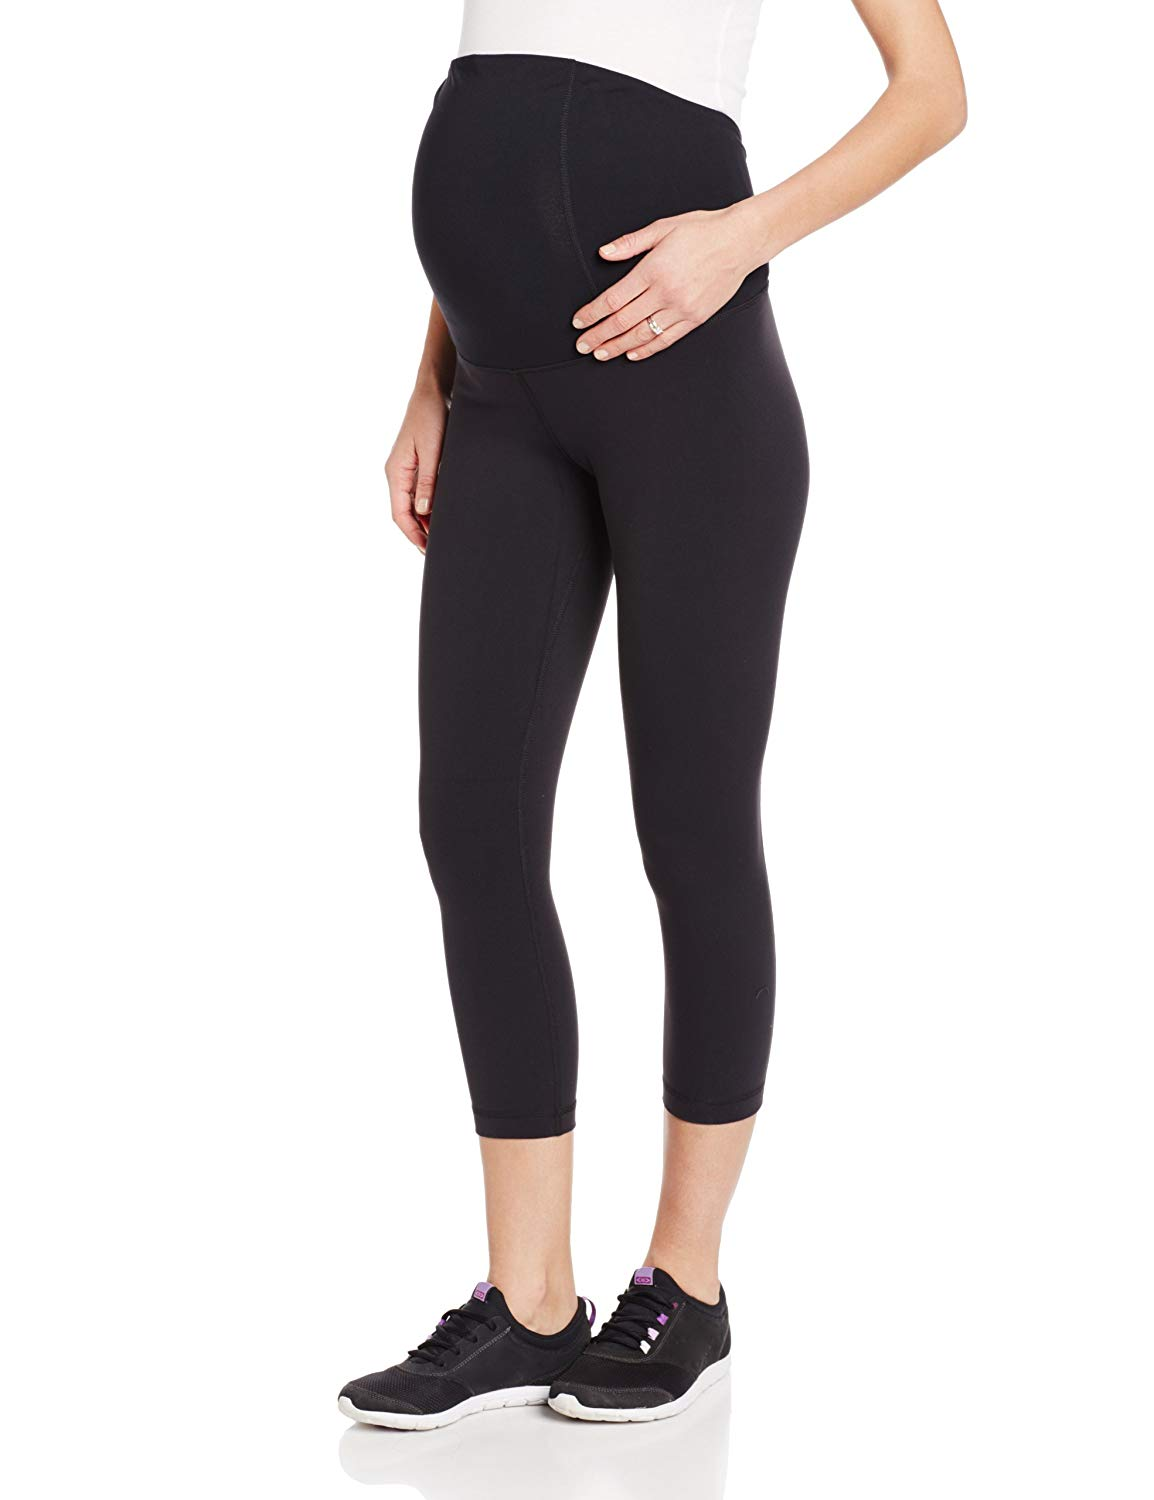 Ingrid & Isabel Maternal Capri Pants